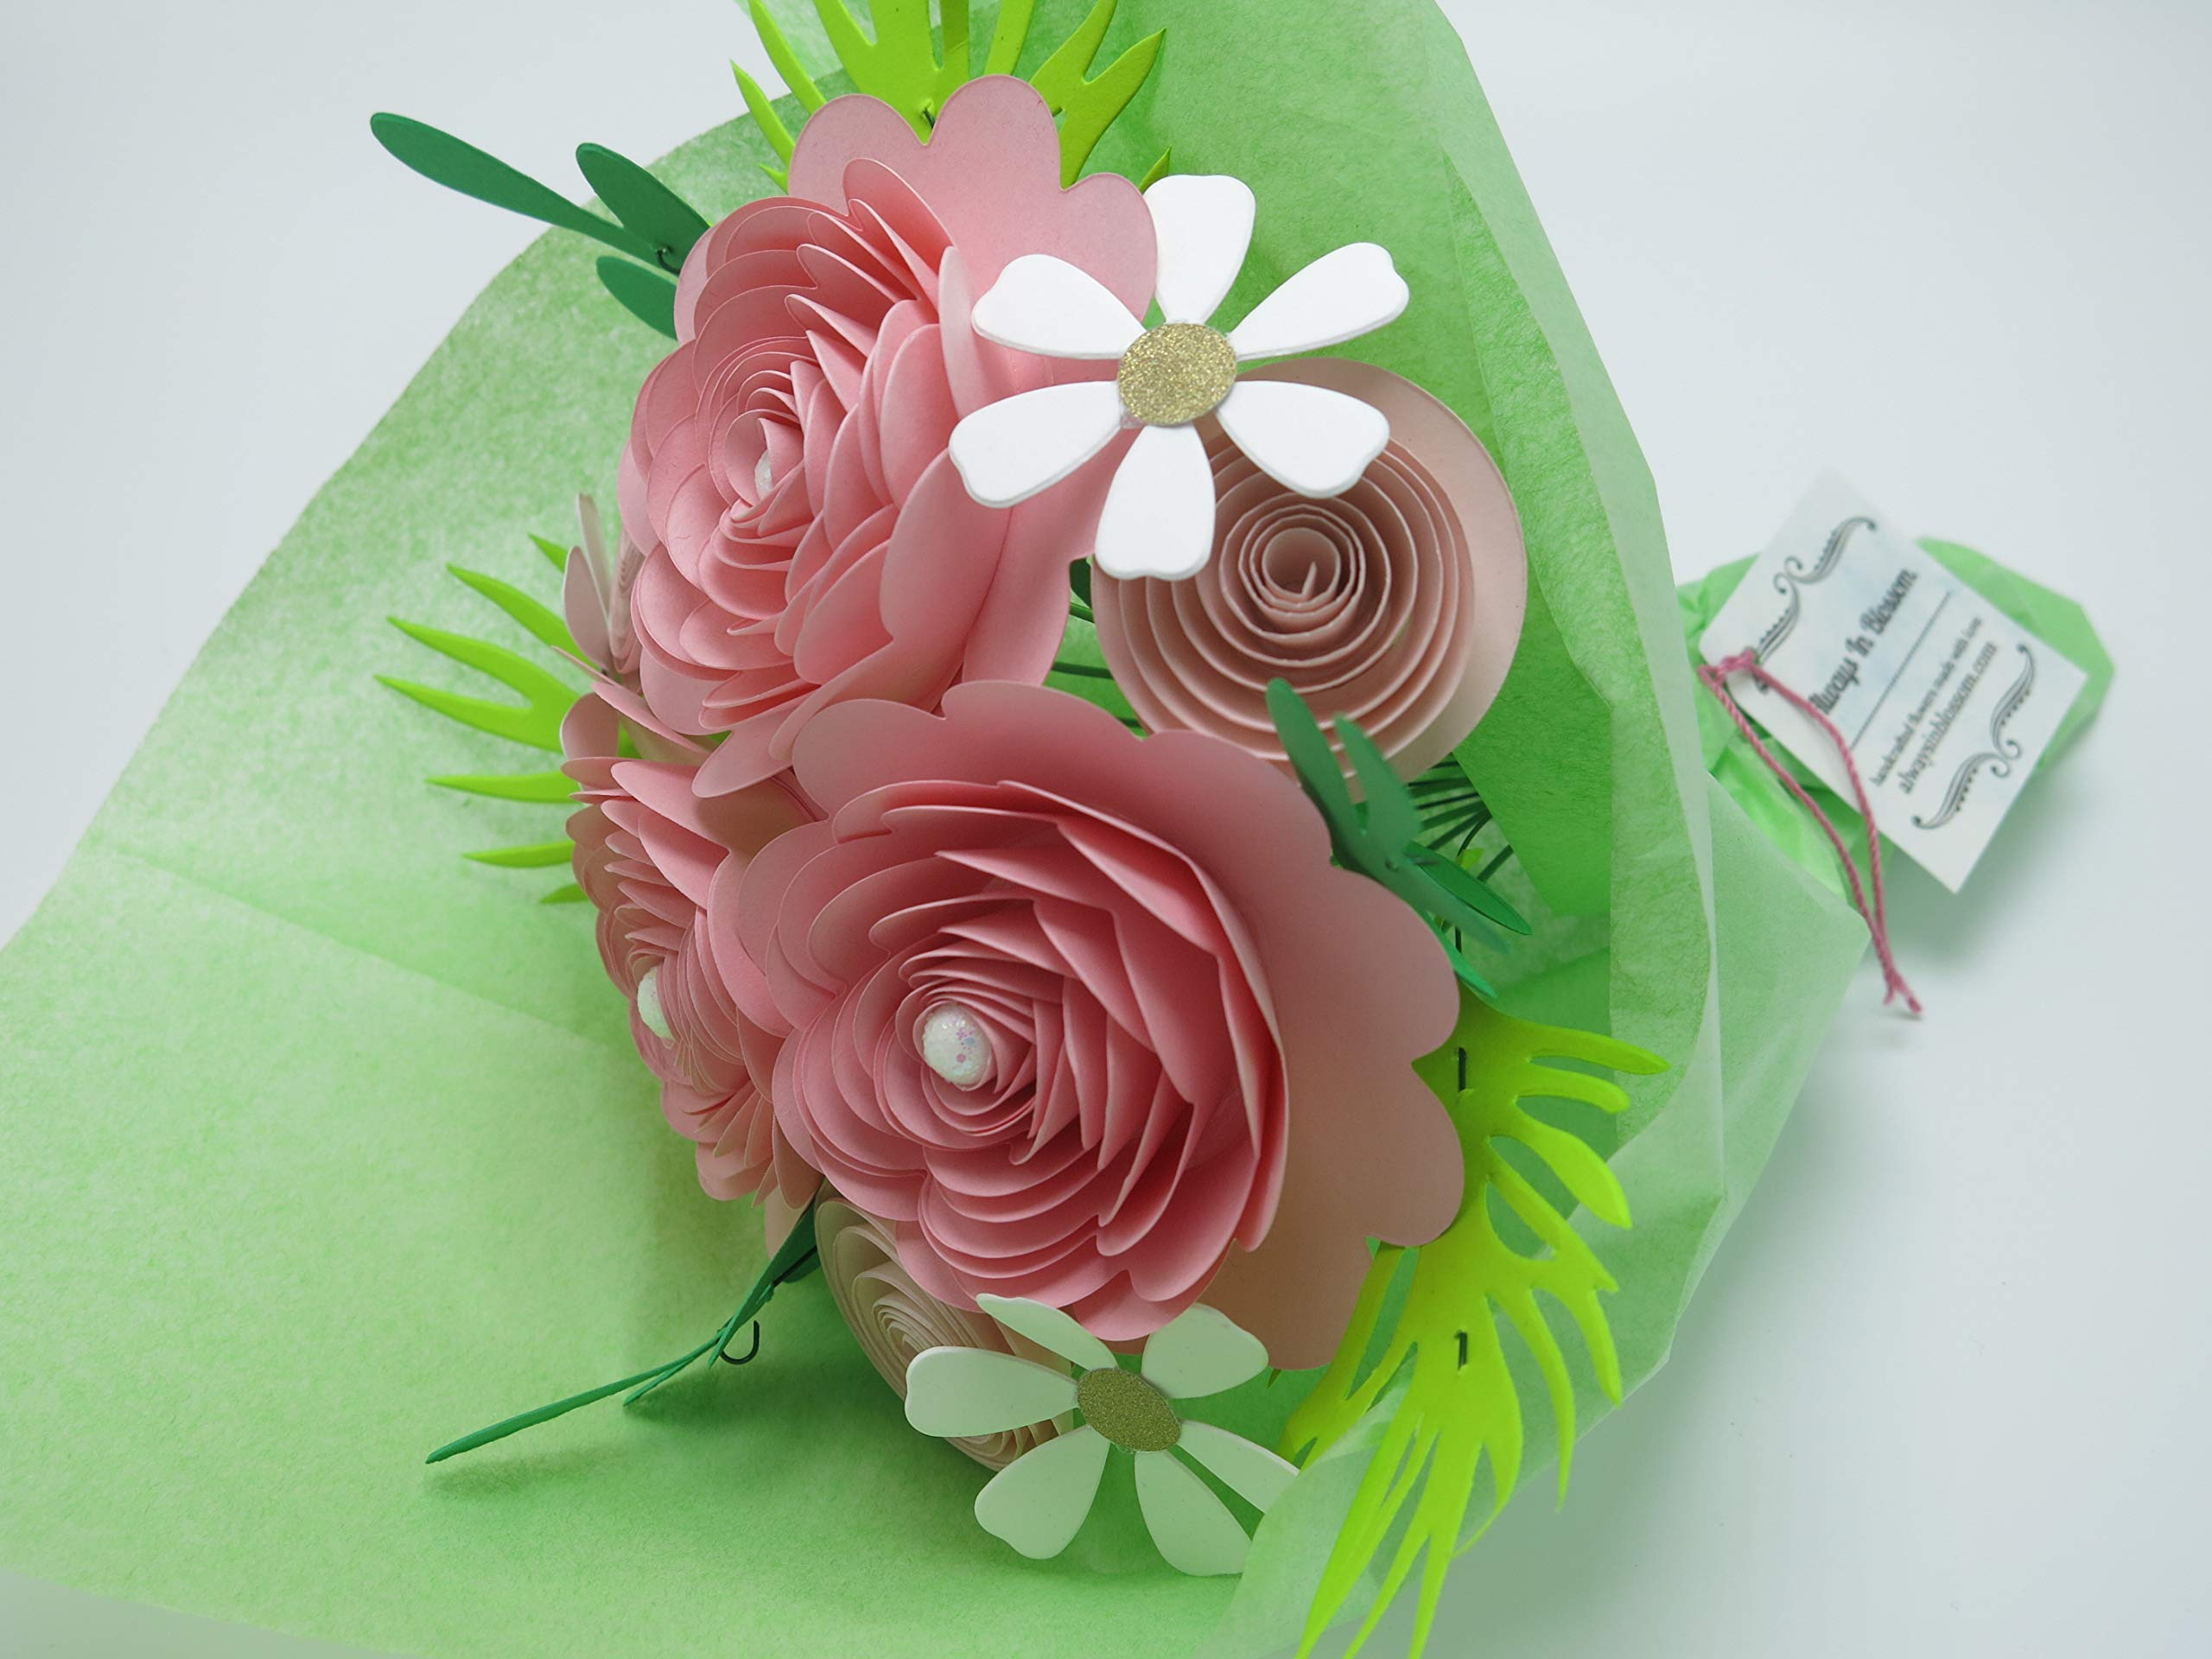 Pink Rose Paper Flower Bouquet, Valentine's Day Gift Idea, Modern Roses and Daisies on Stems, Set of 15 Floral Picks